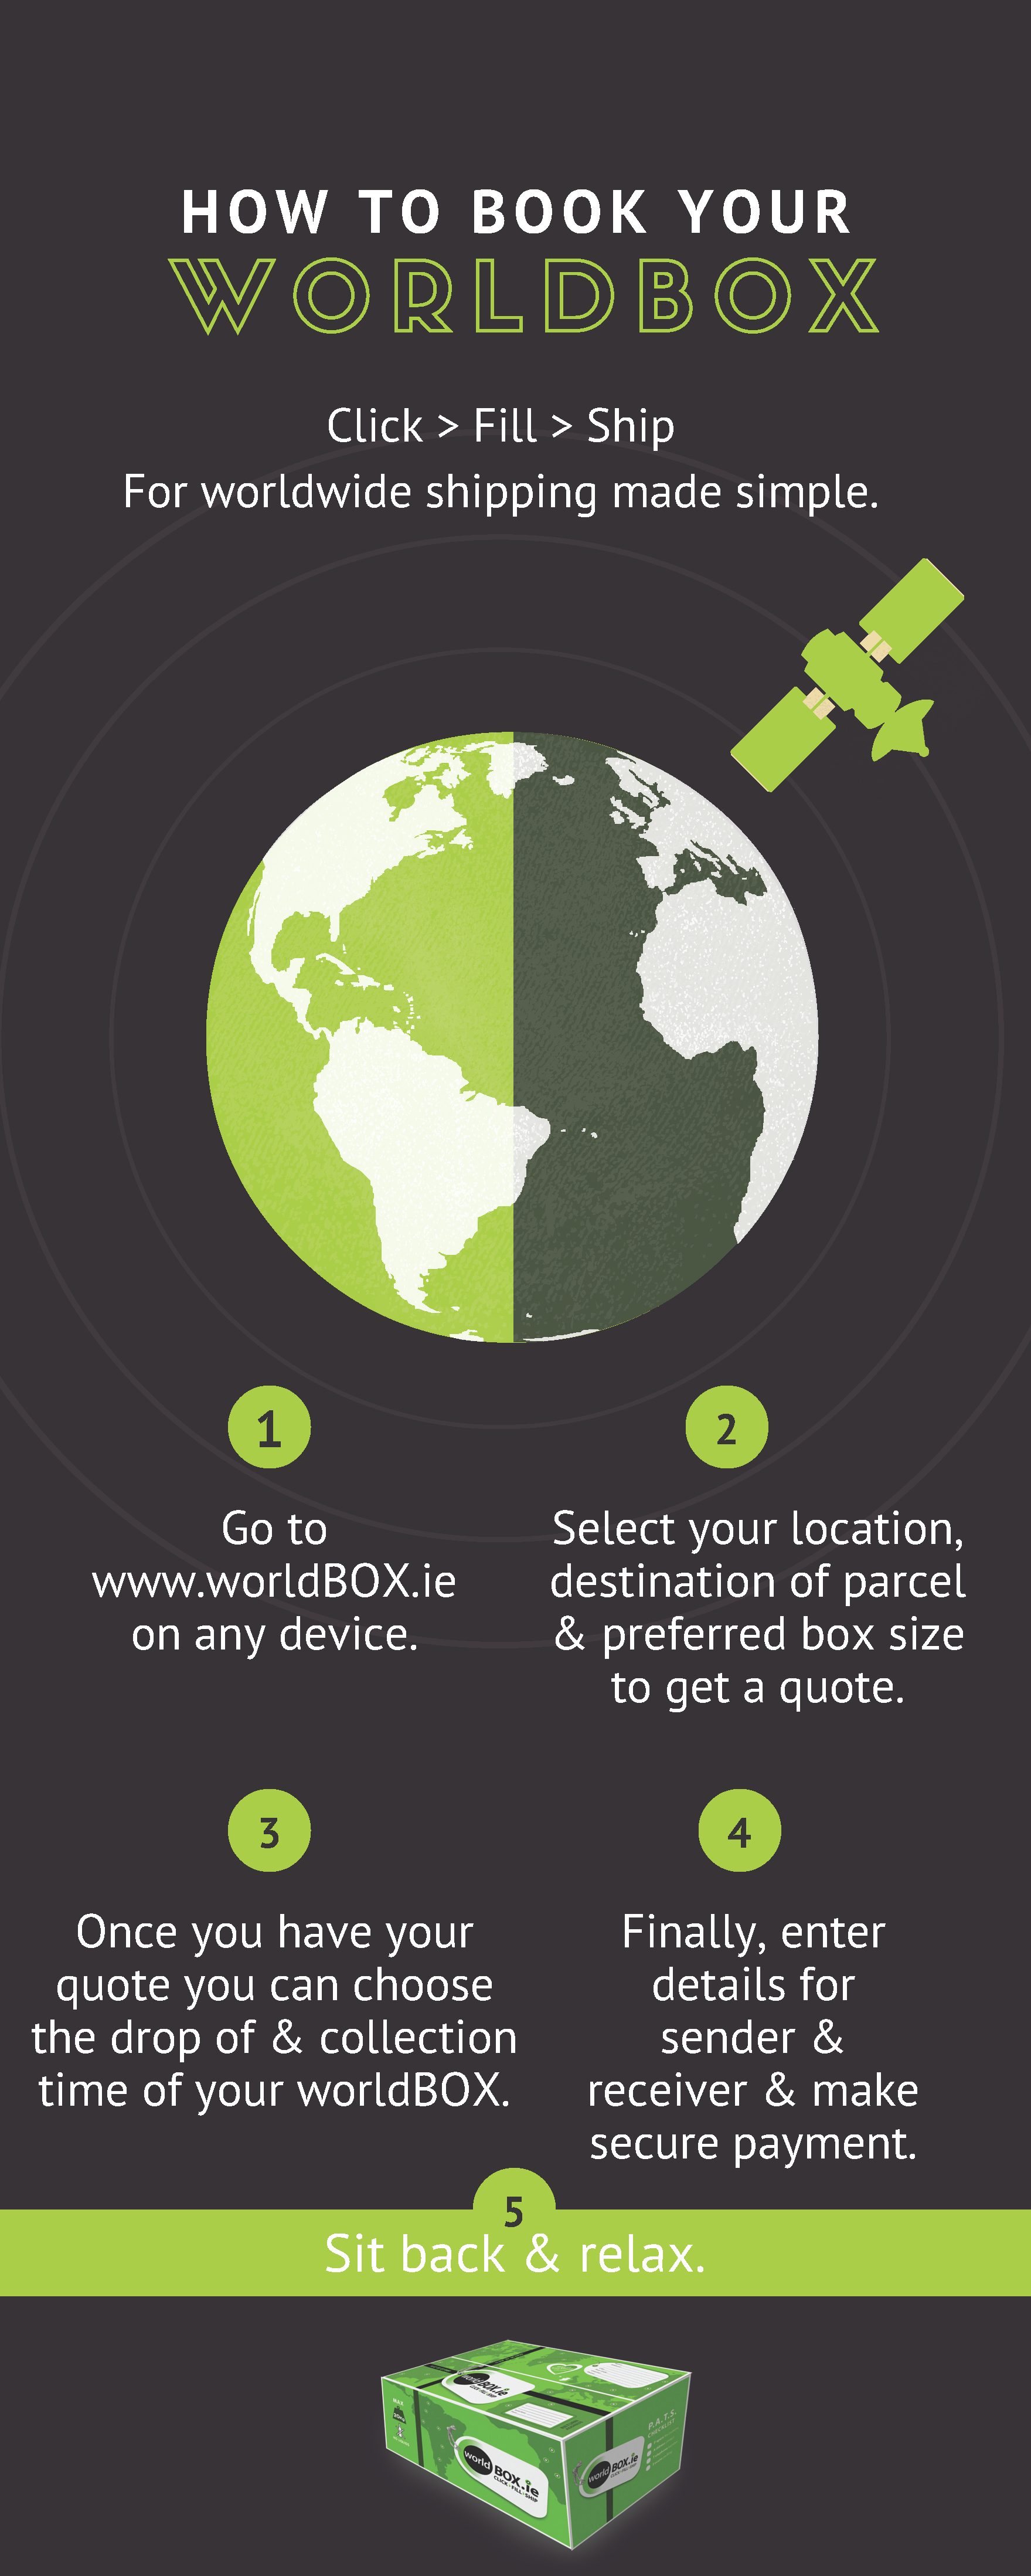 worldBOX infographic